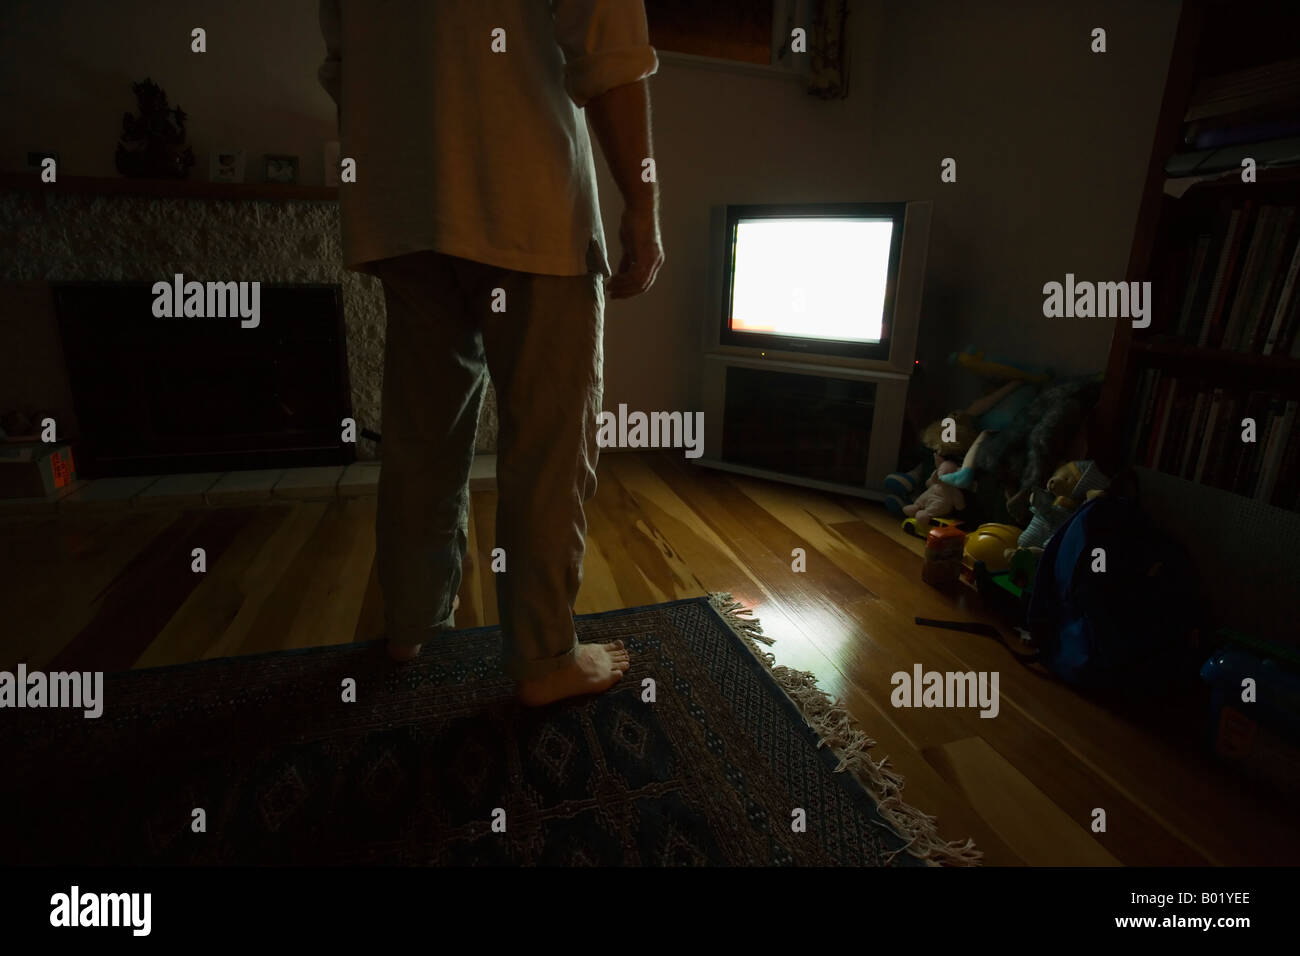 Man barefoot stands in front of television - Stock Image